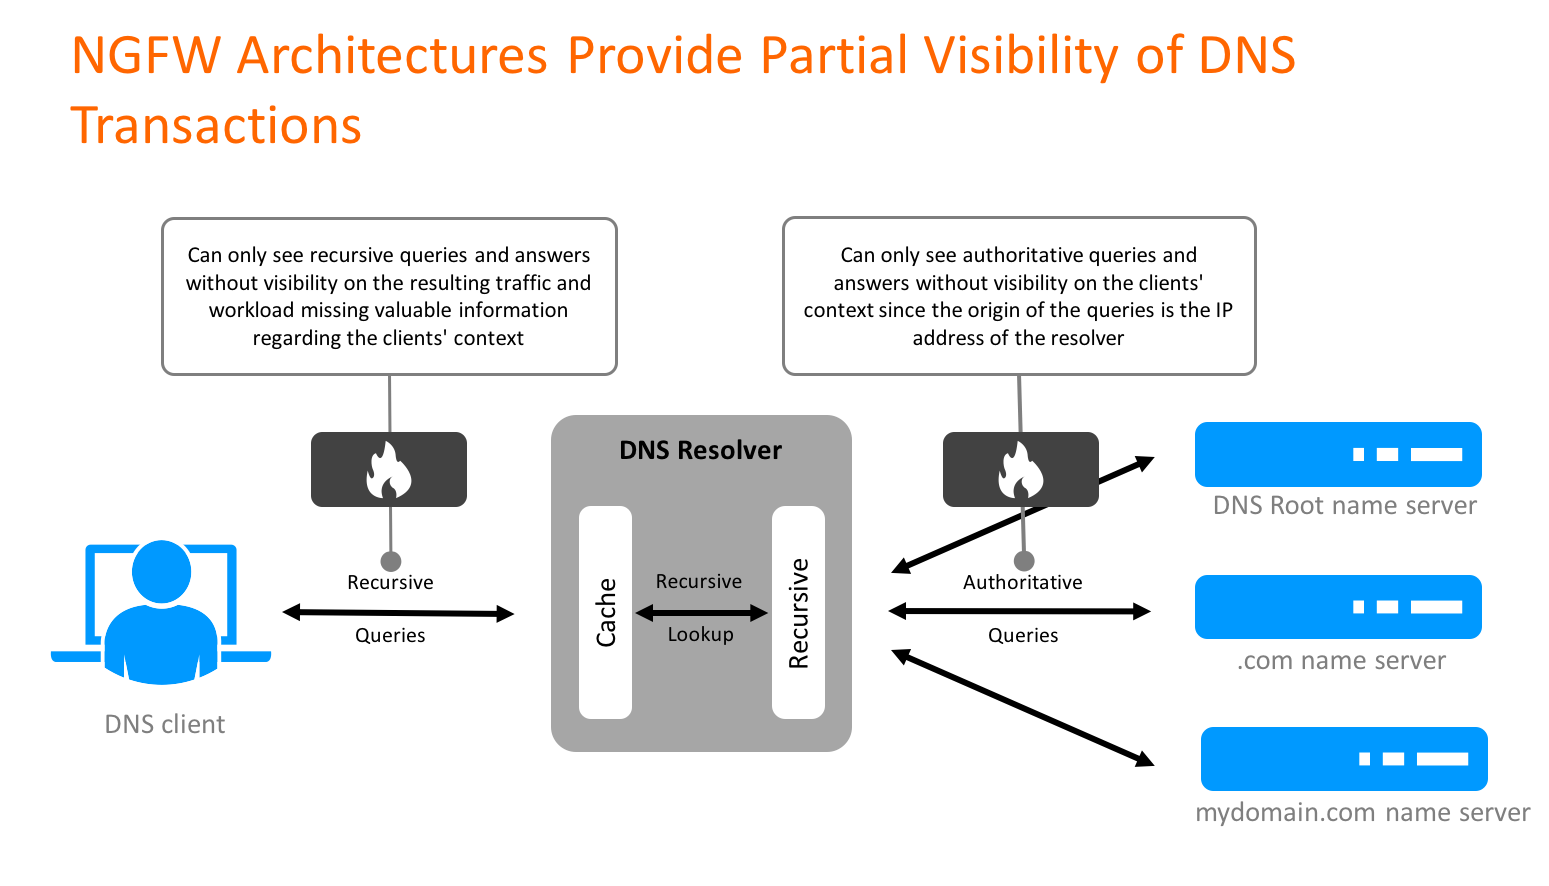 NGFW ArchitecturesProvide Partial Visibility of DNS Transactions